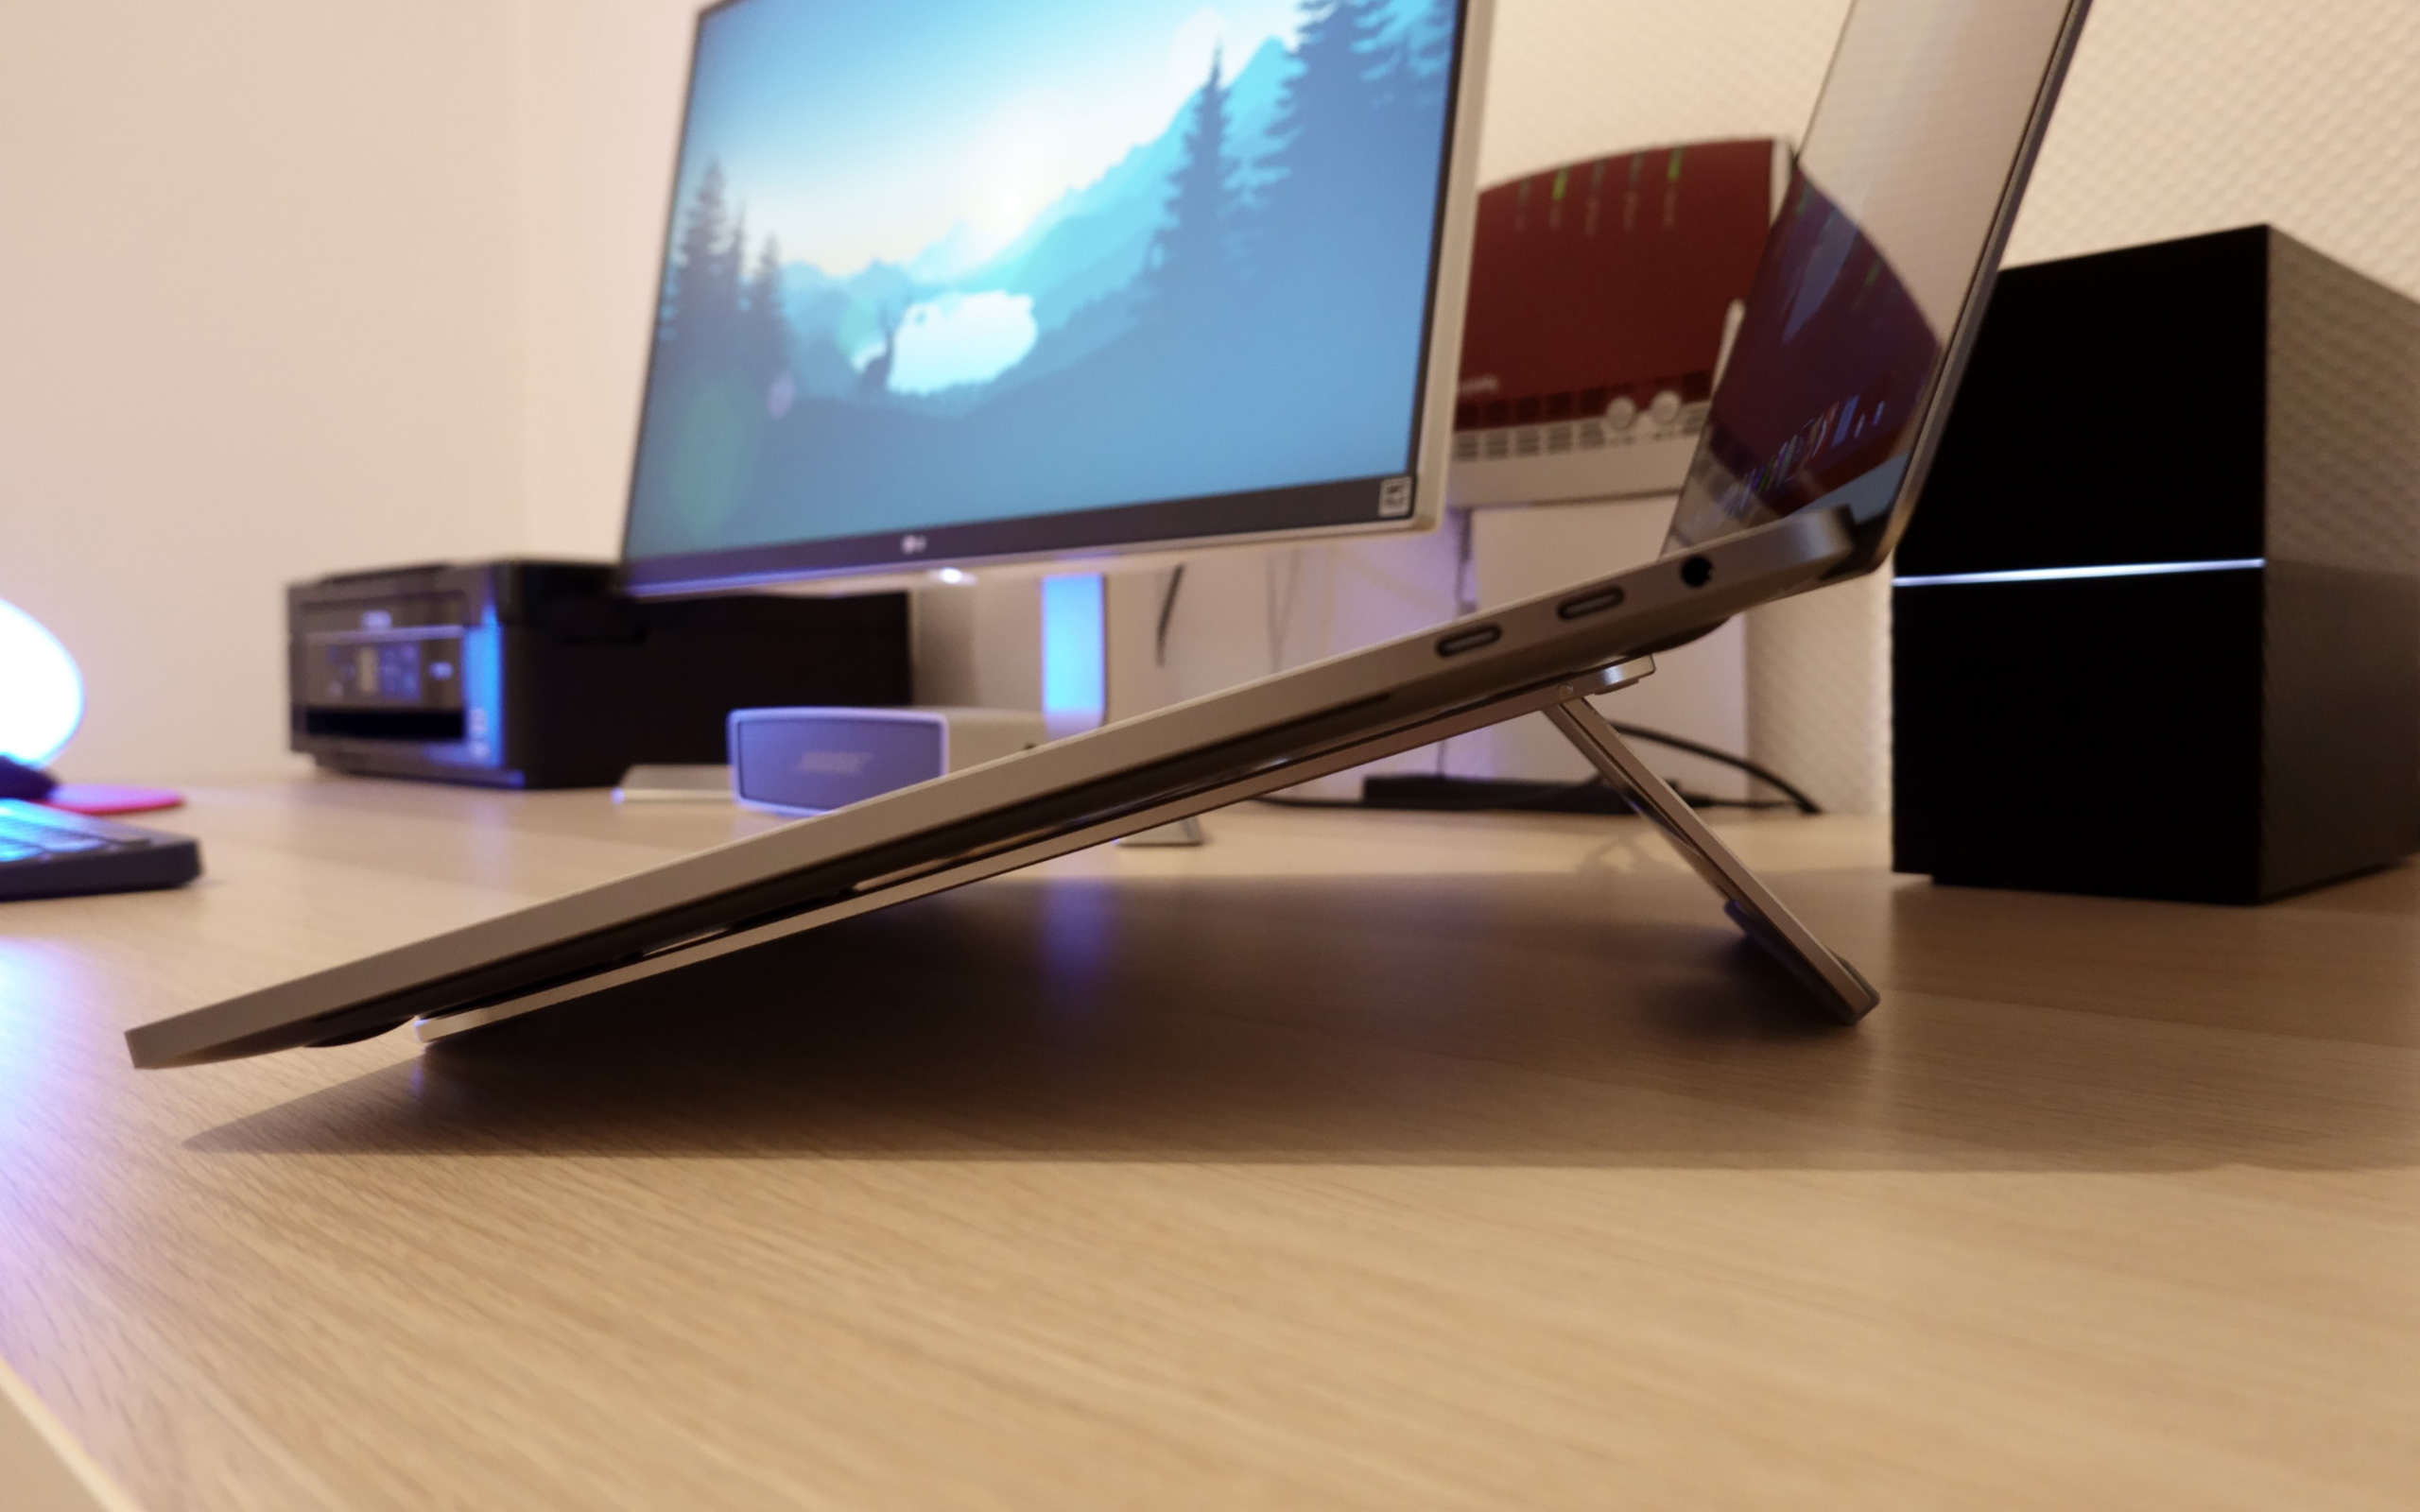 Satechi Laptop Stand.